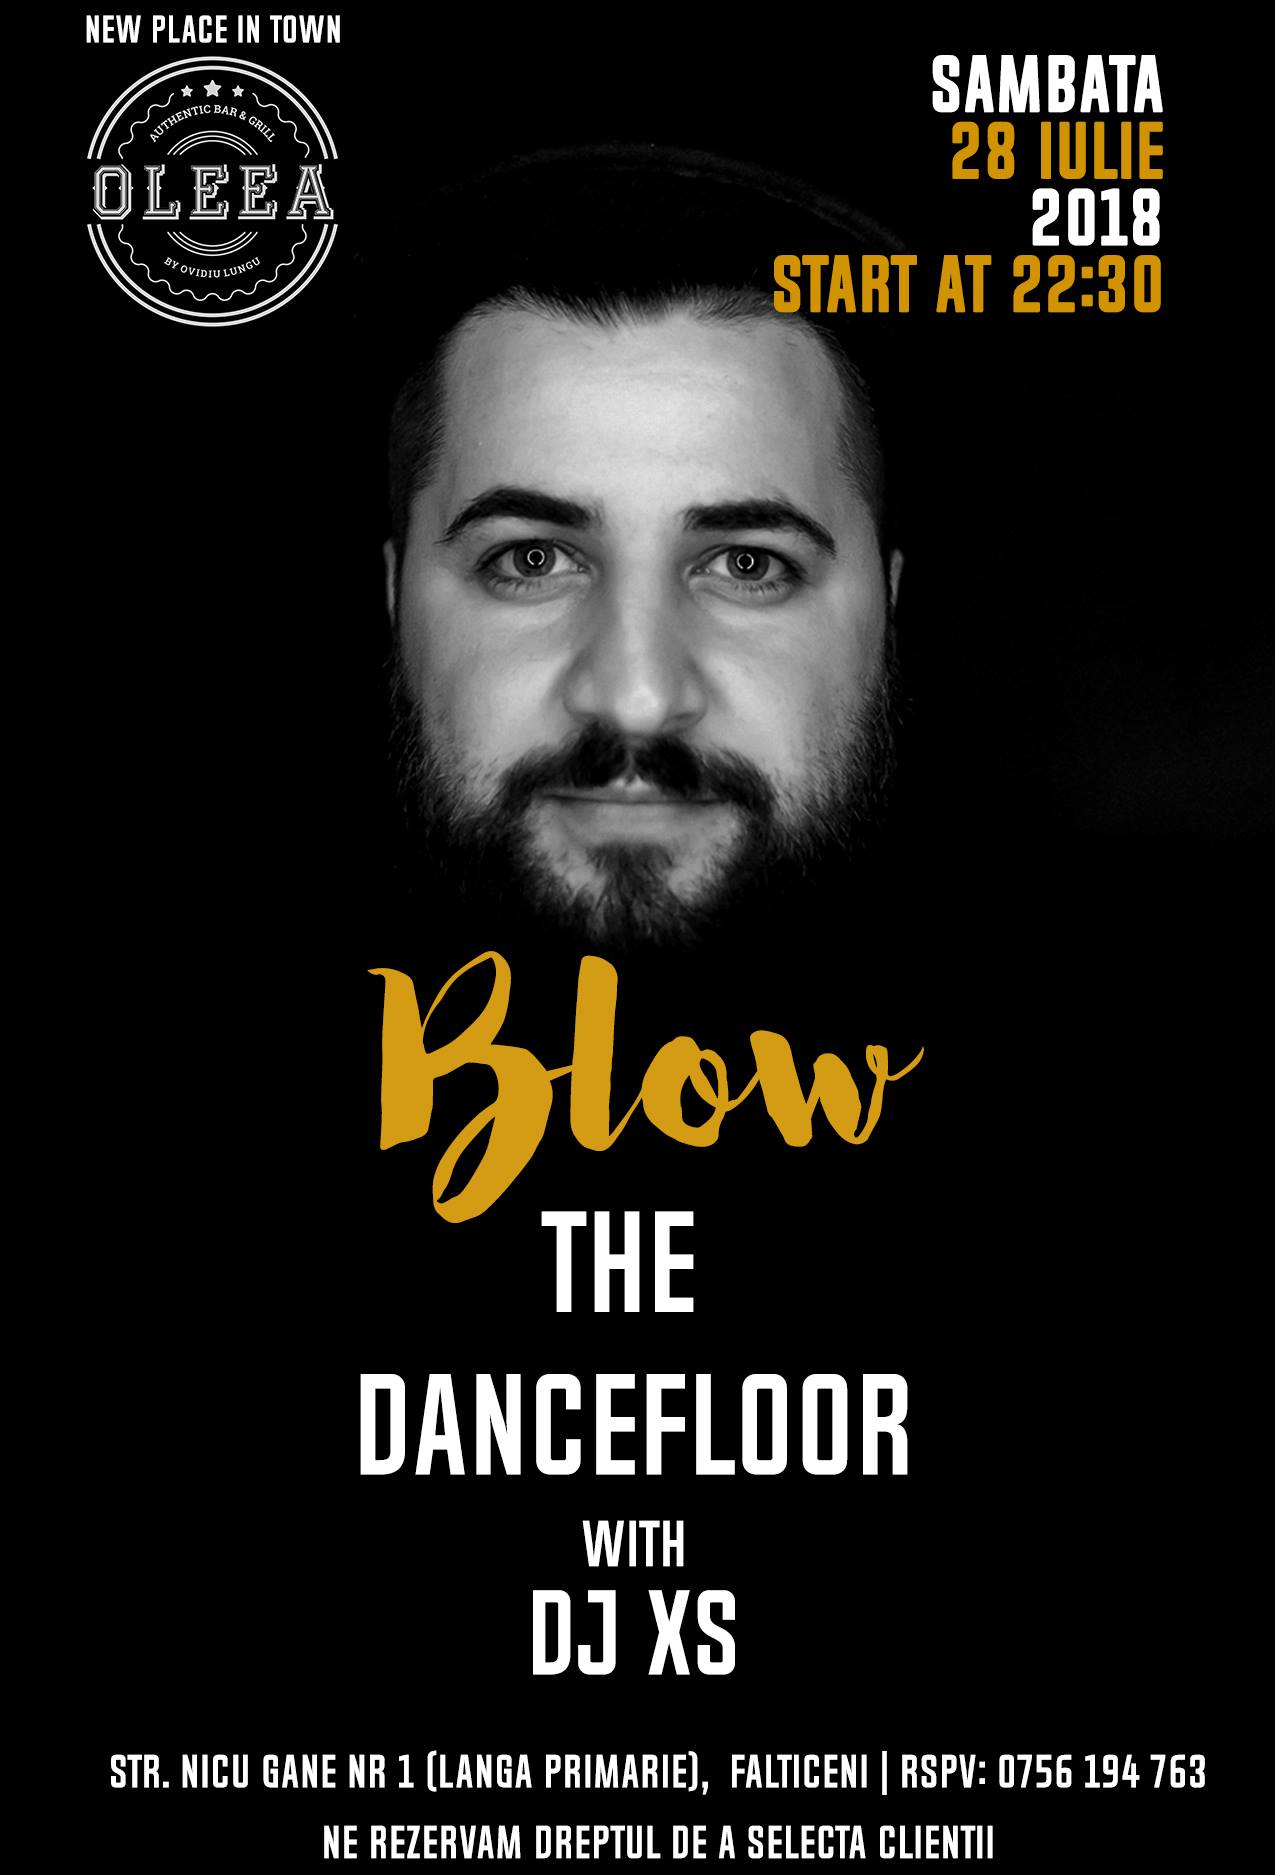 Blow the Dancefloor